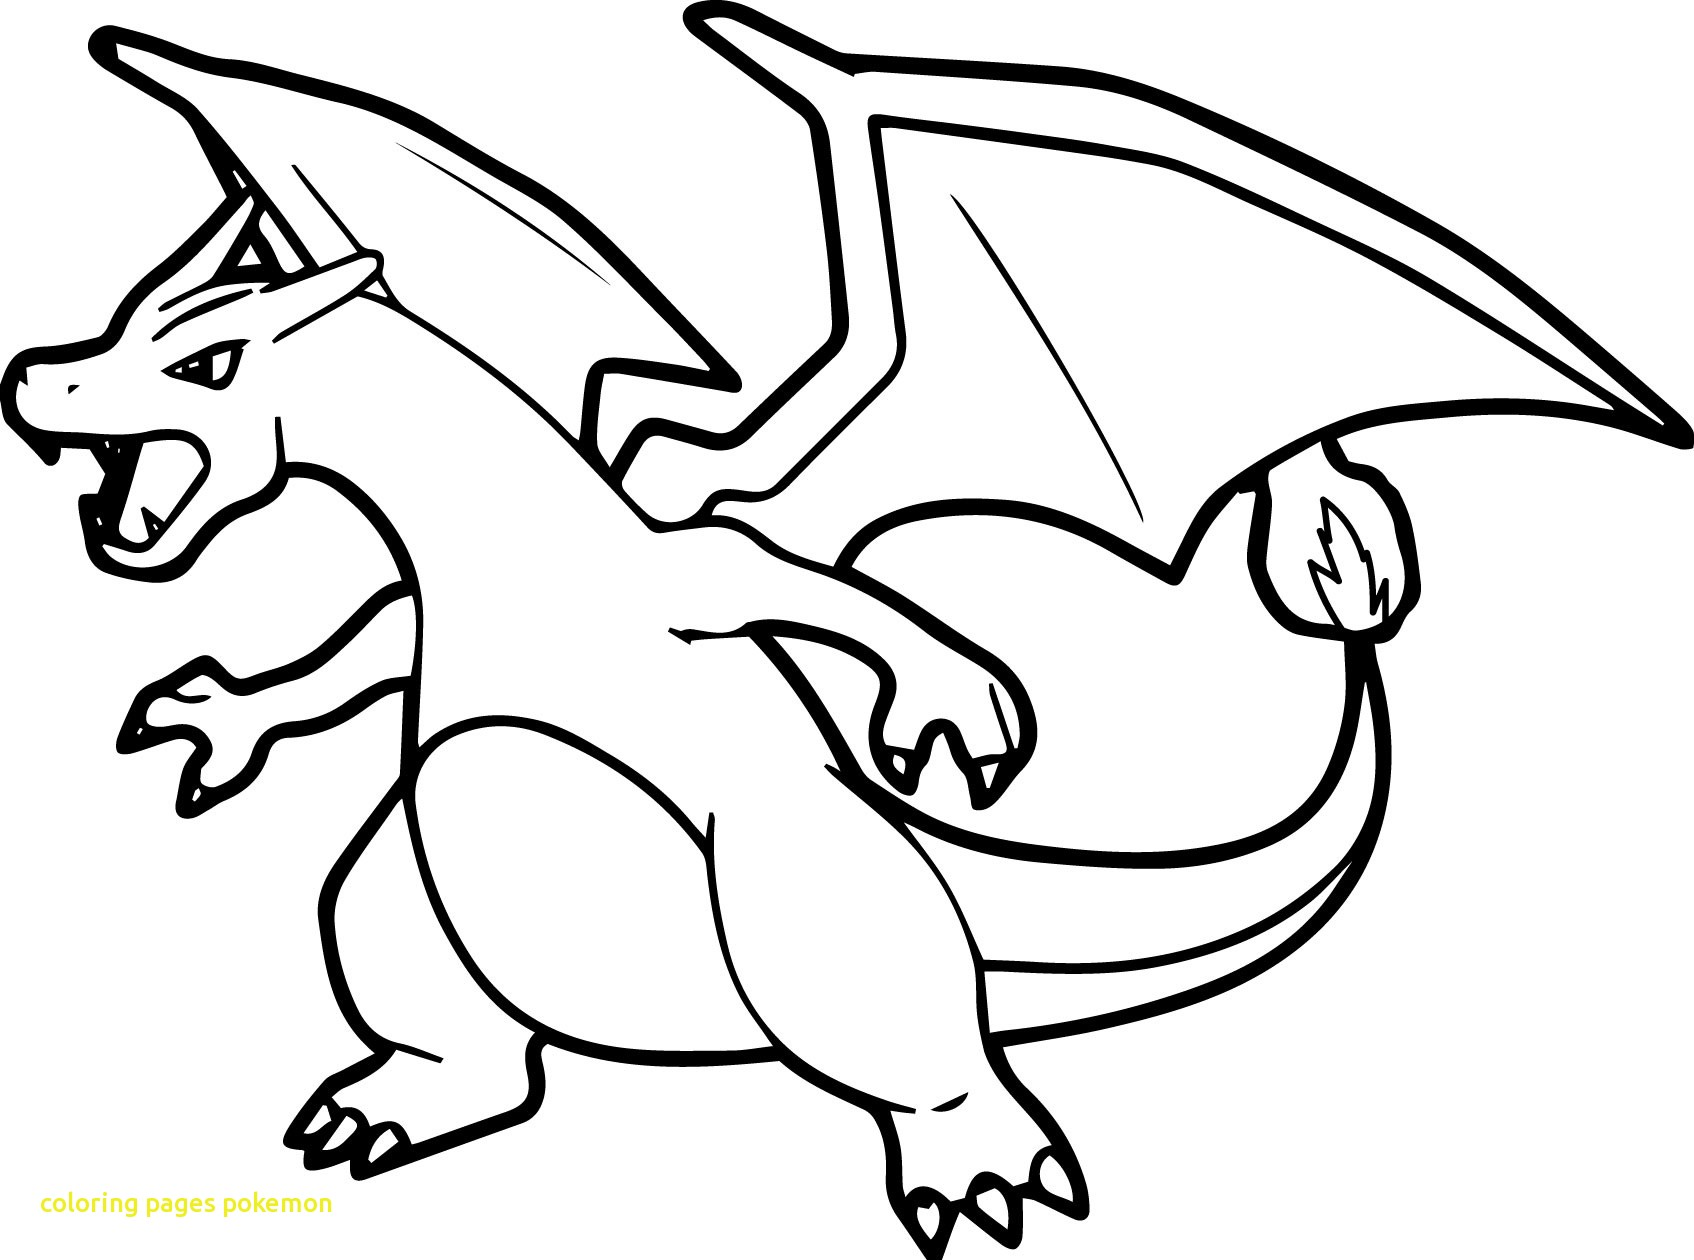 1694x1260 Coloring Pages Pokemon With Mega Charizard New Page